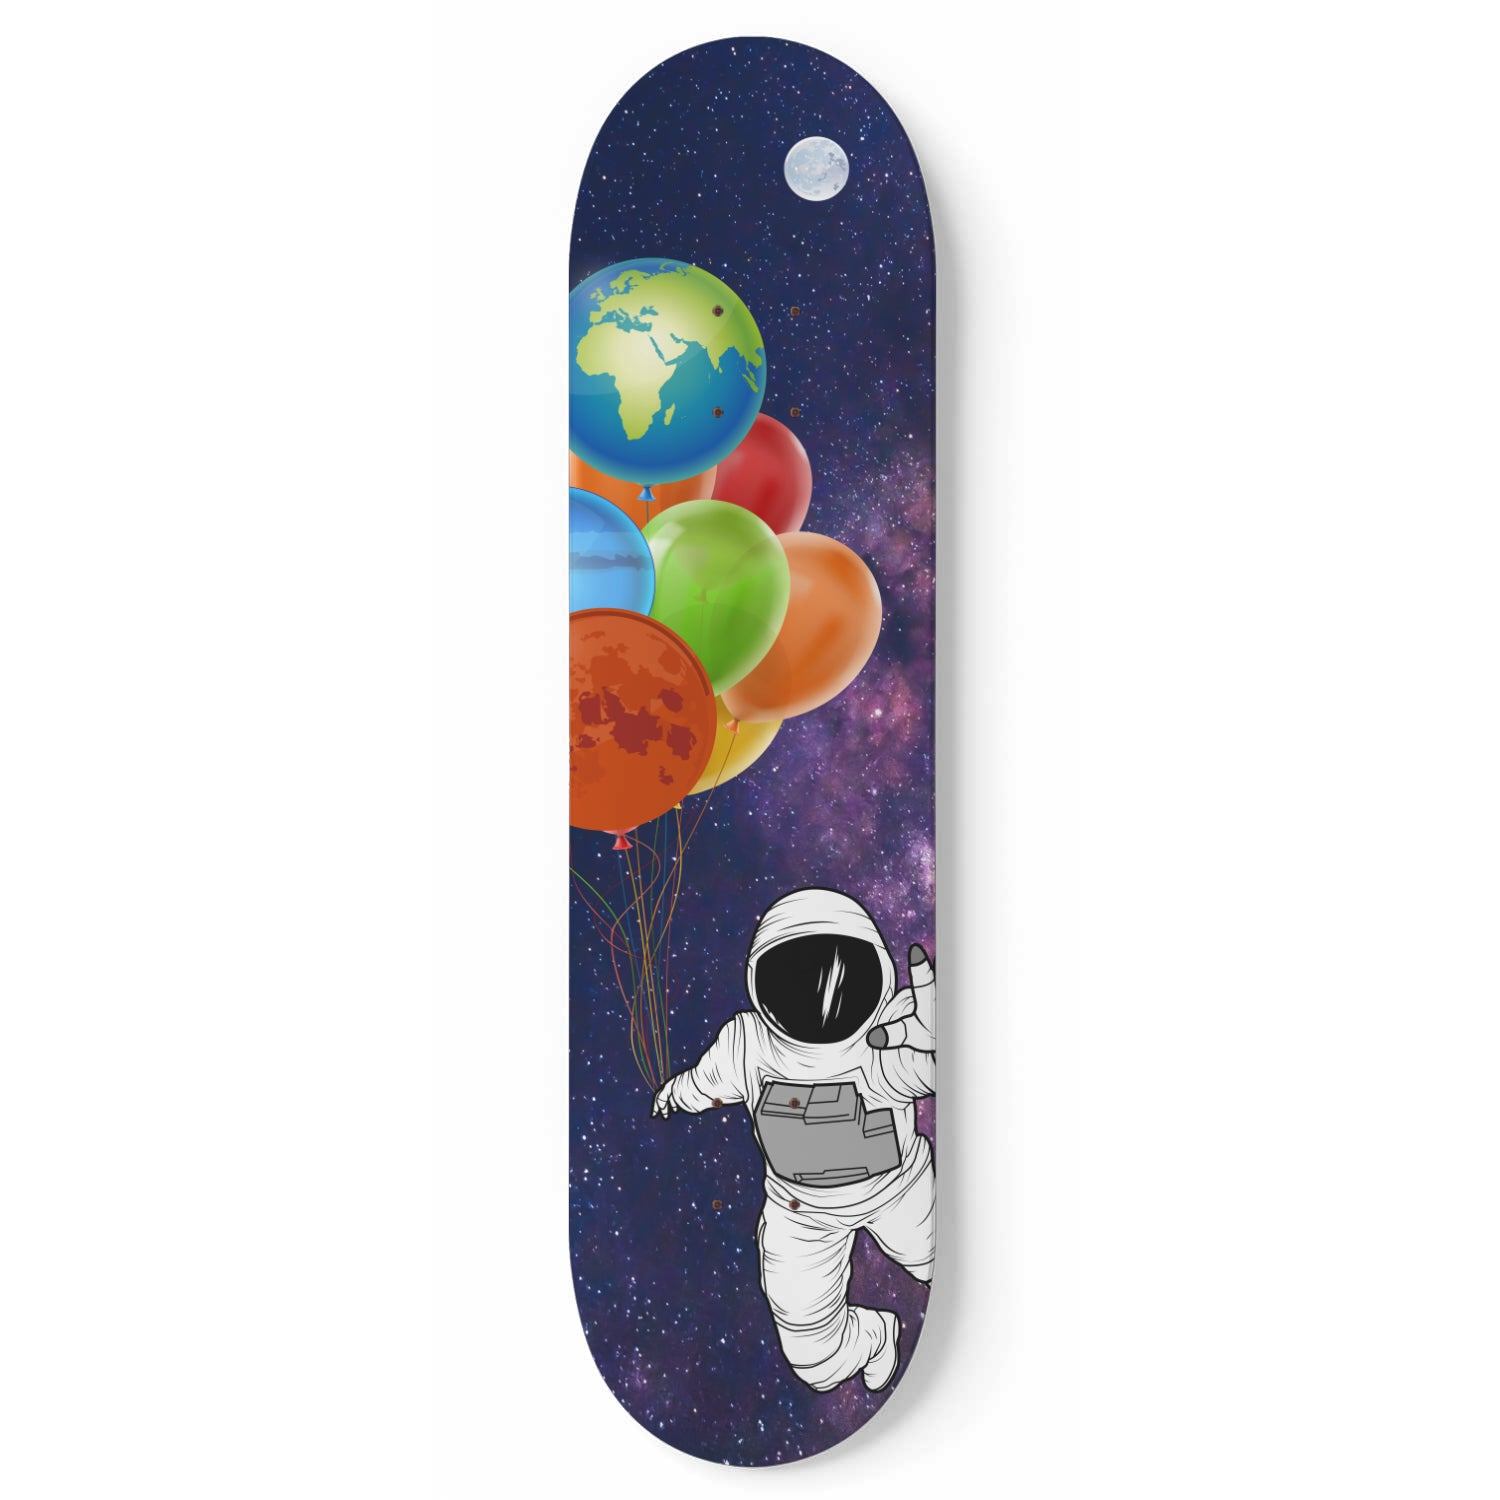 Out of this World - 1 Piece Skateboard Wall Art